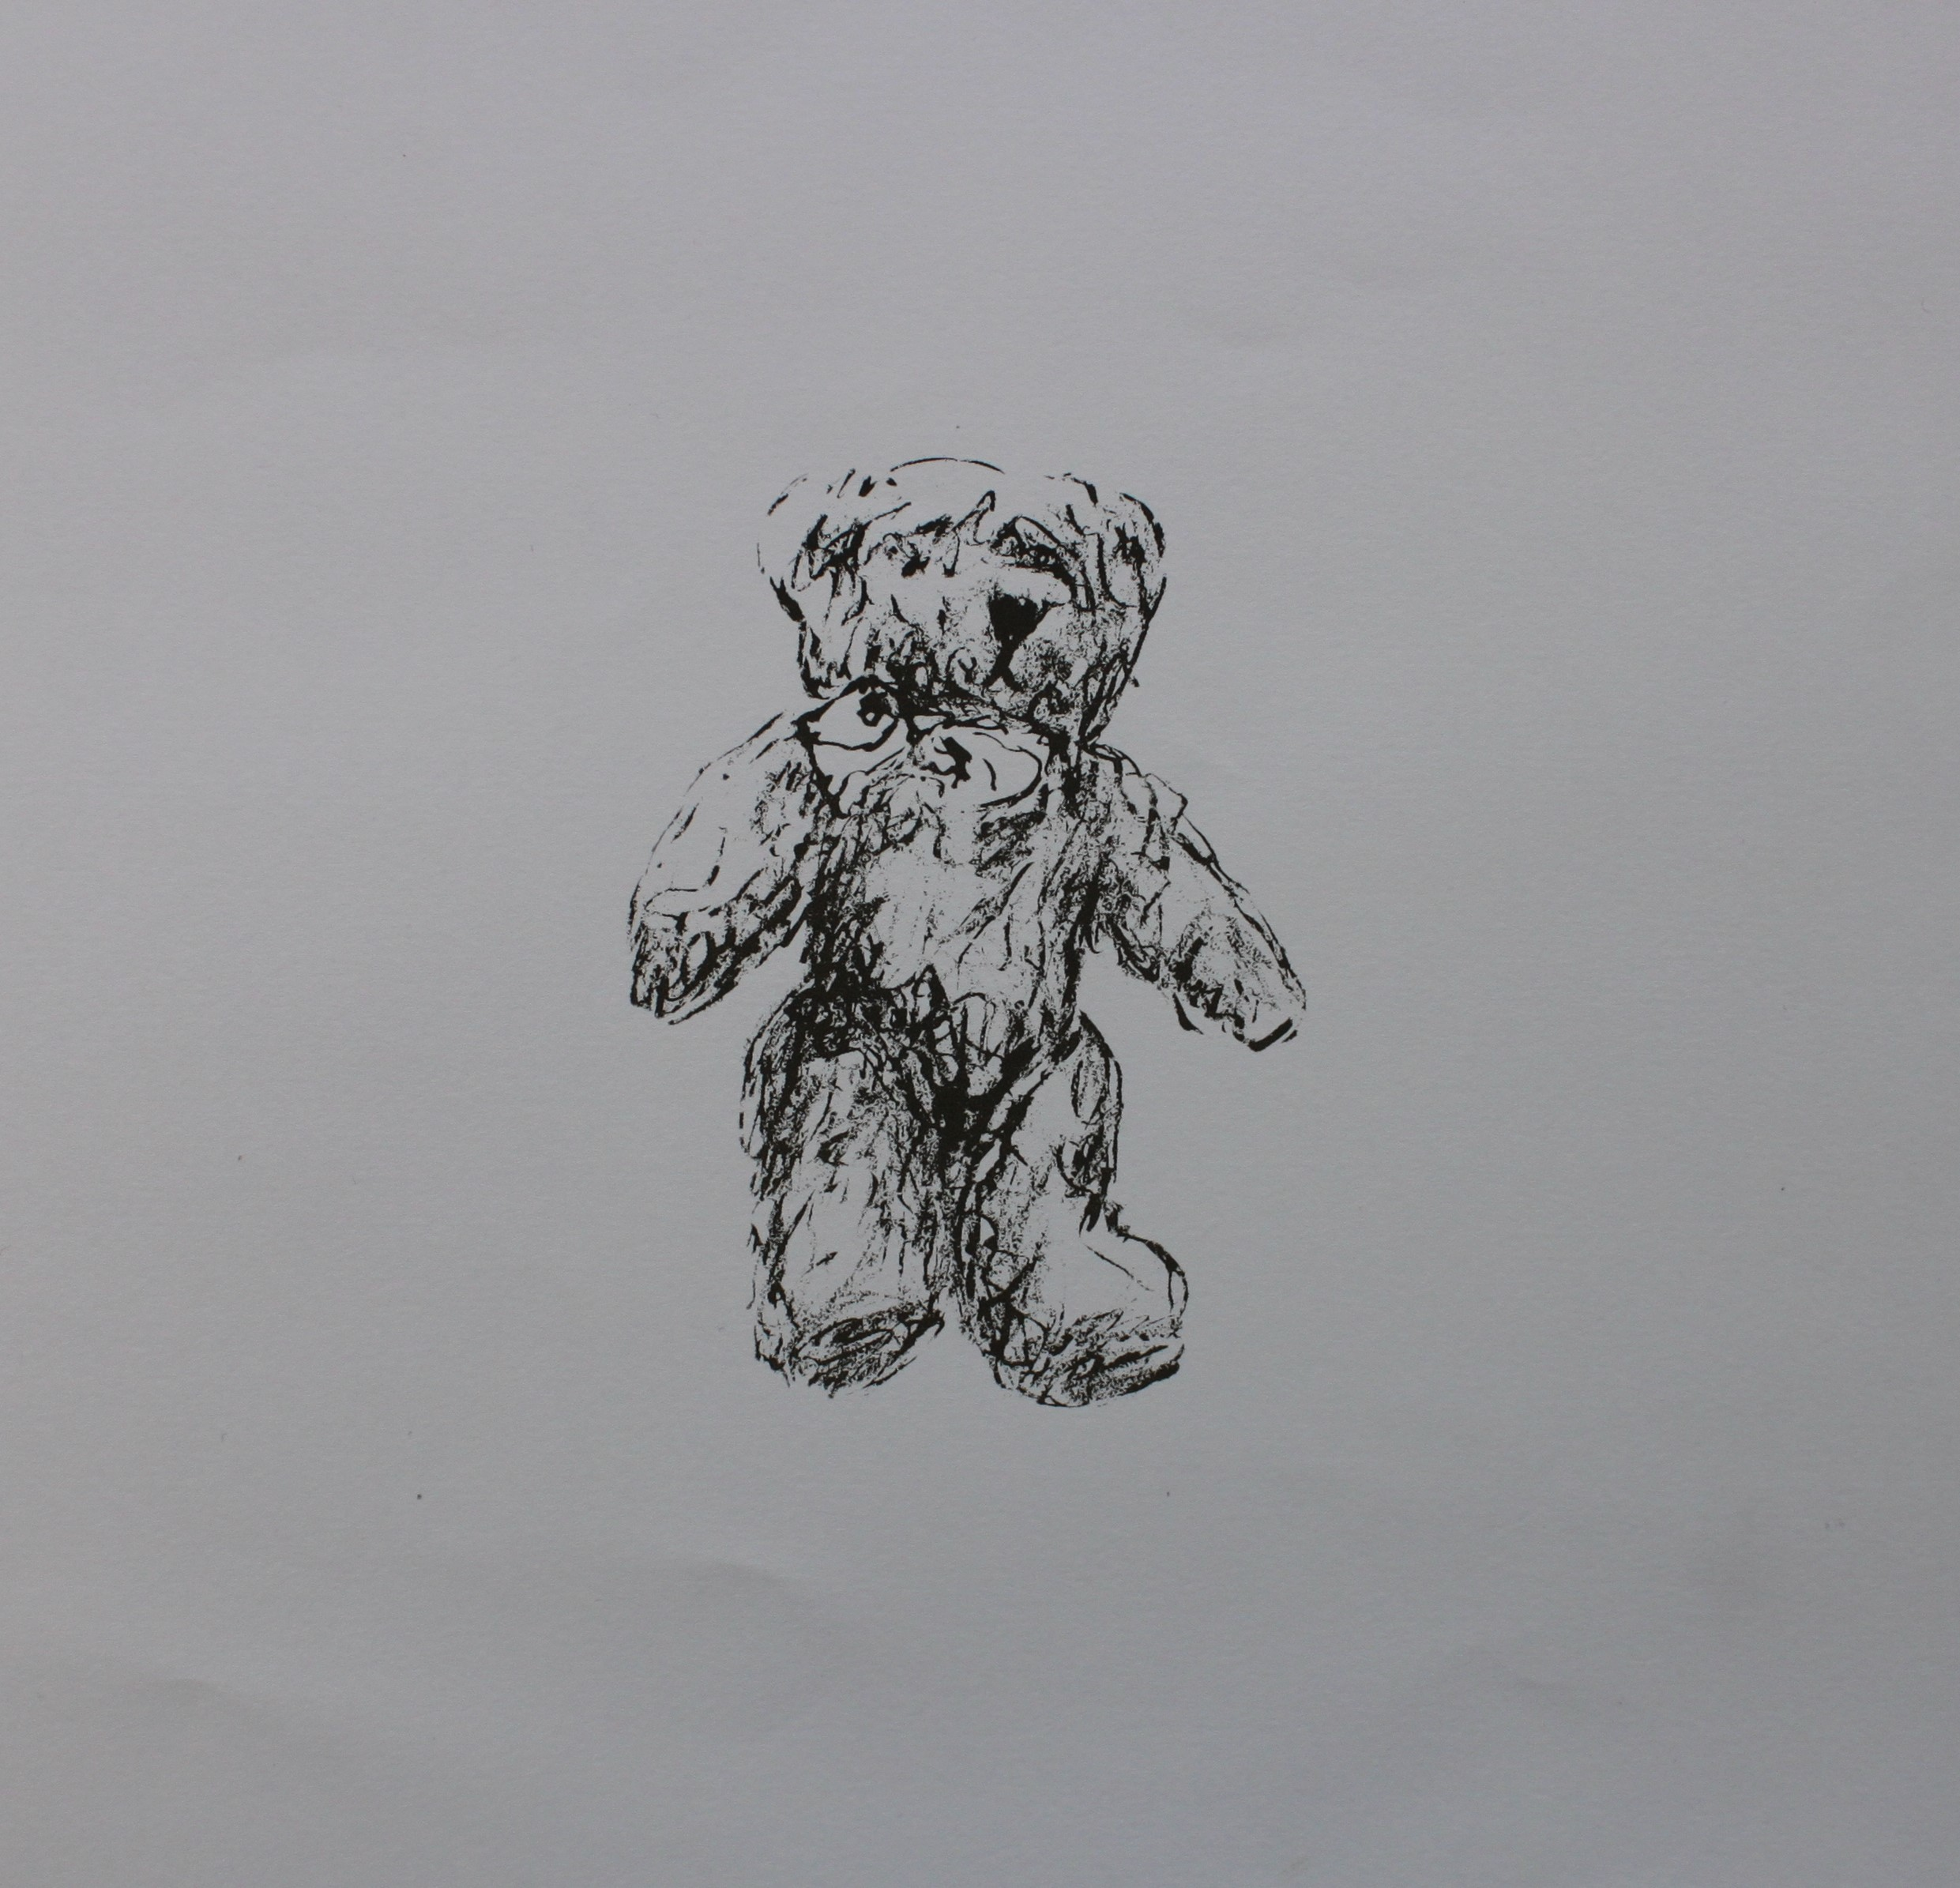 Bear With Me, 2015, Screenprint, Edition of 10, 20x20cm